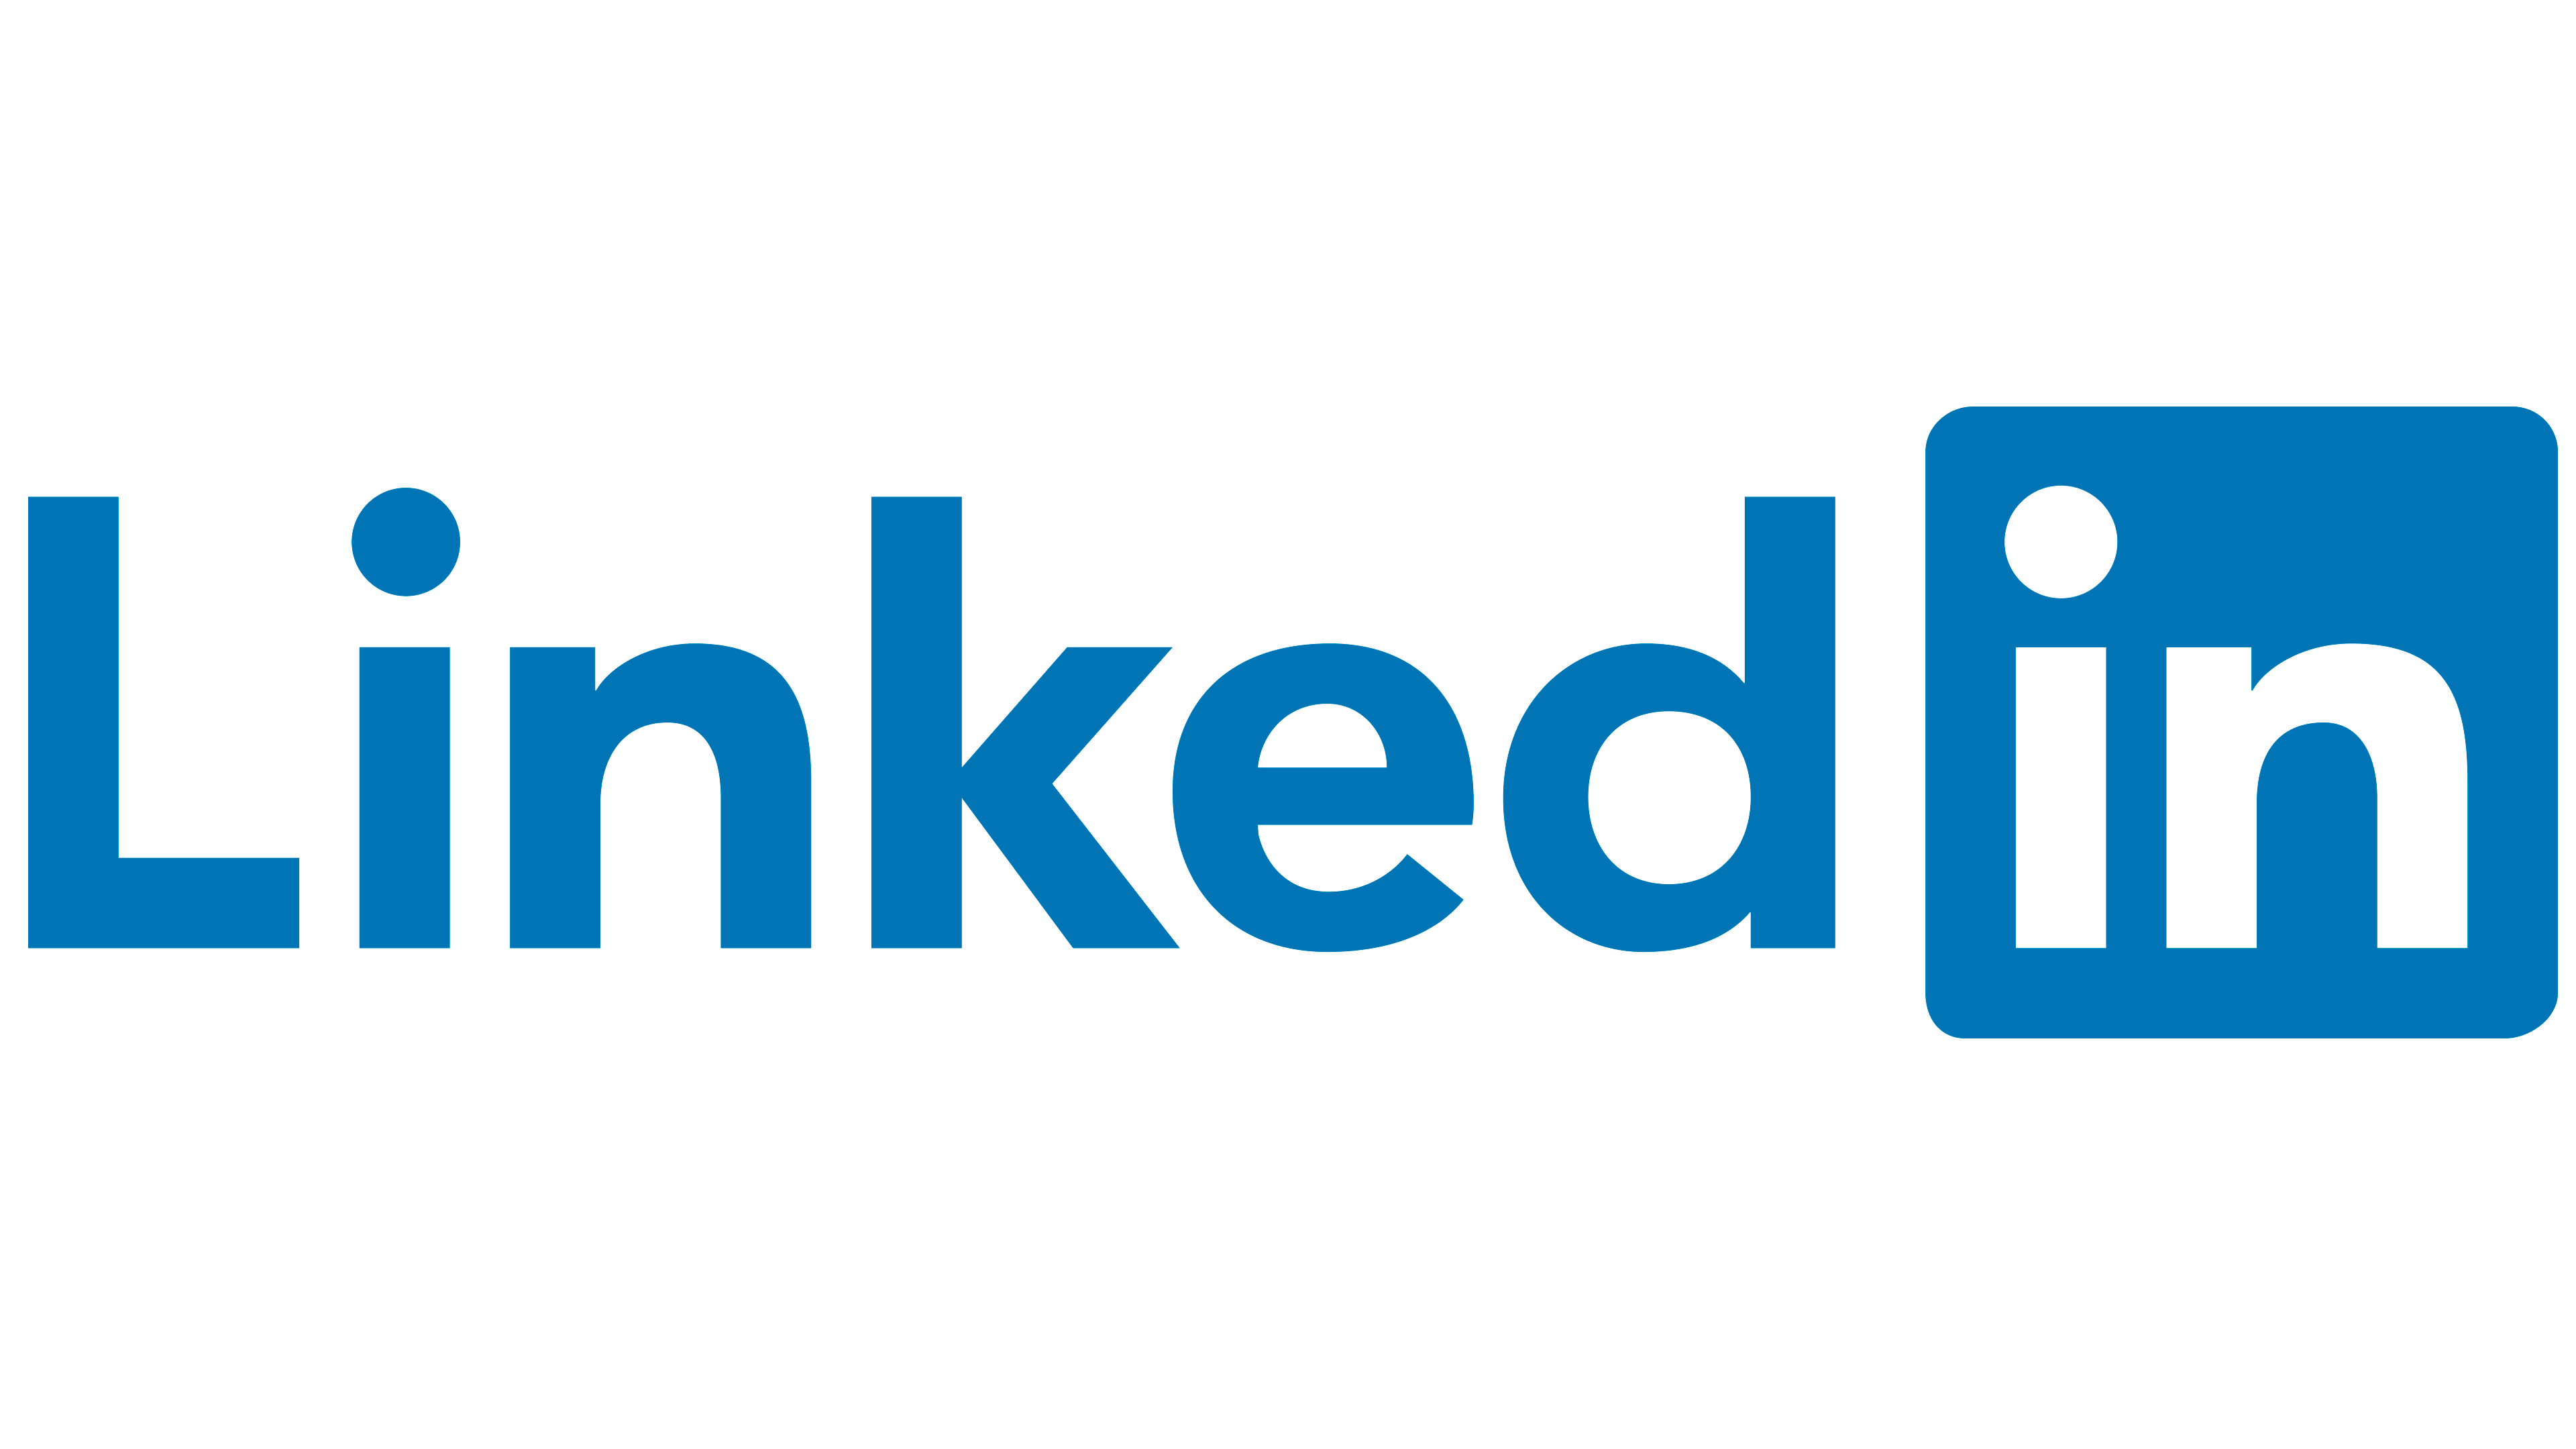 LinkedIn now has 450 million members, but the number of